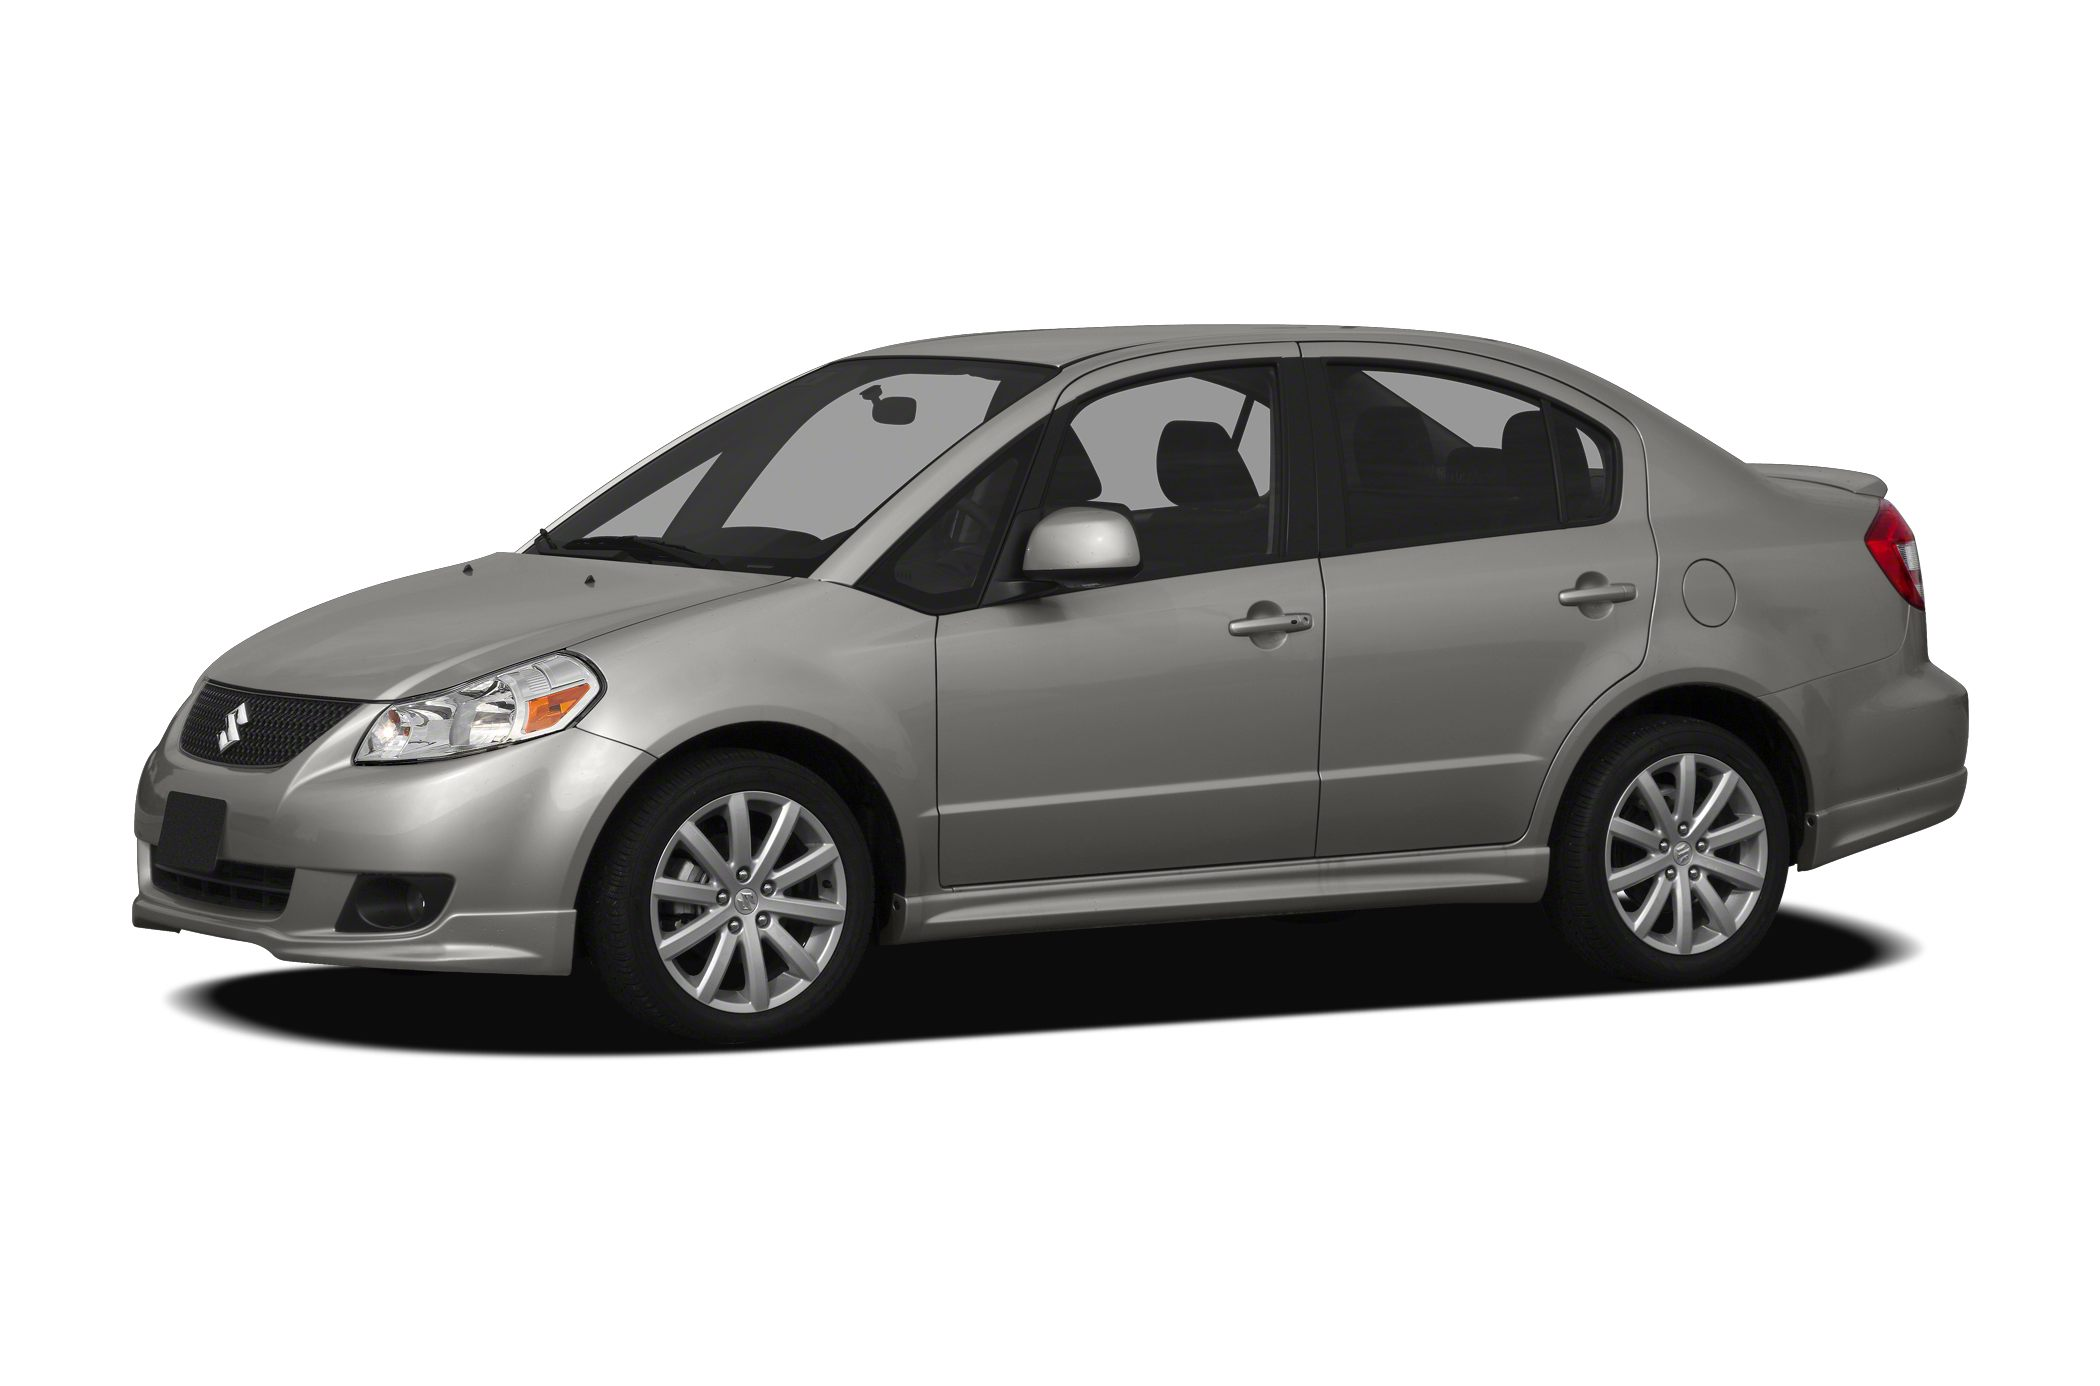 2012 Suzuki SX4 LE OUR PRICESYoure probably wondering why our prices are so much lower than the